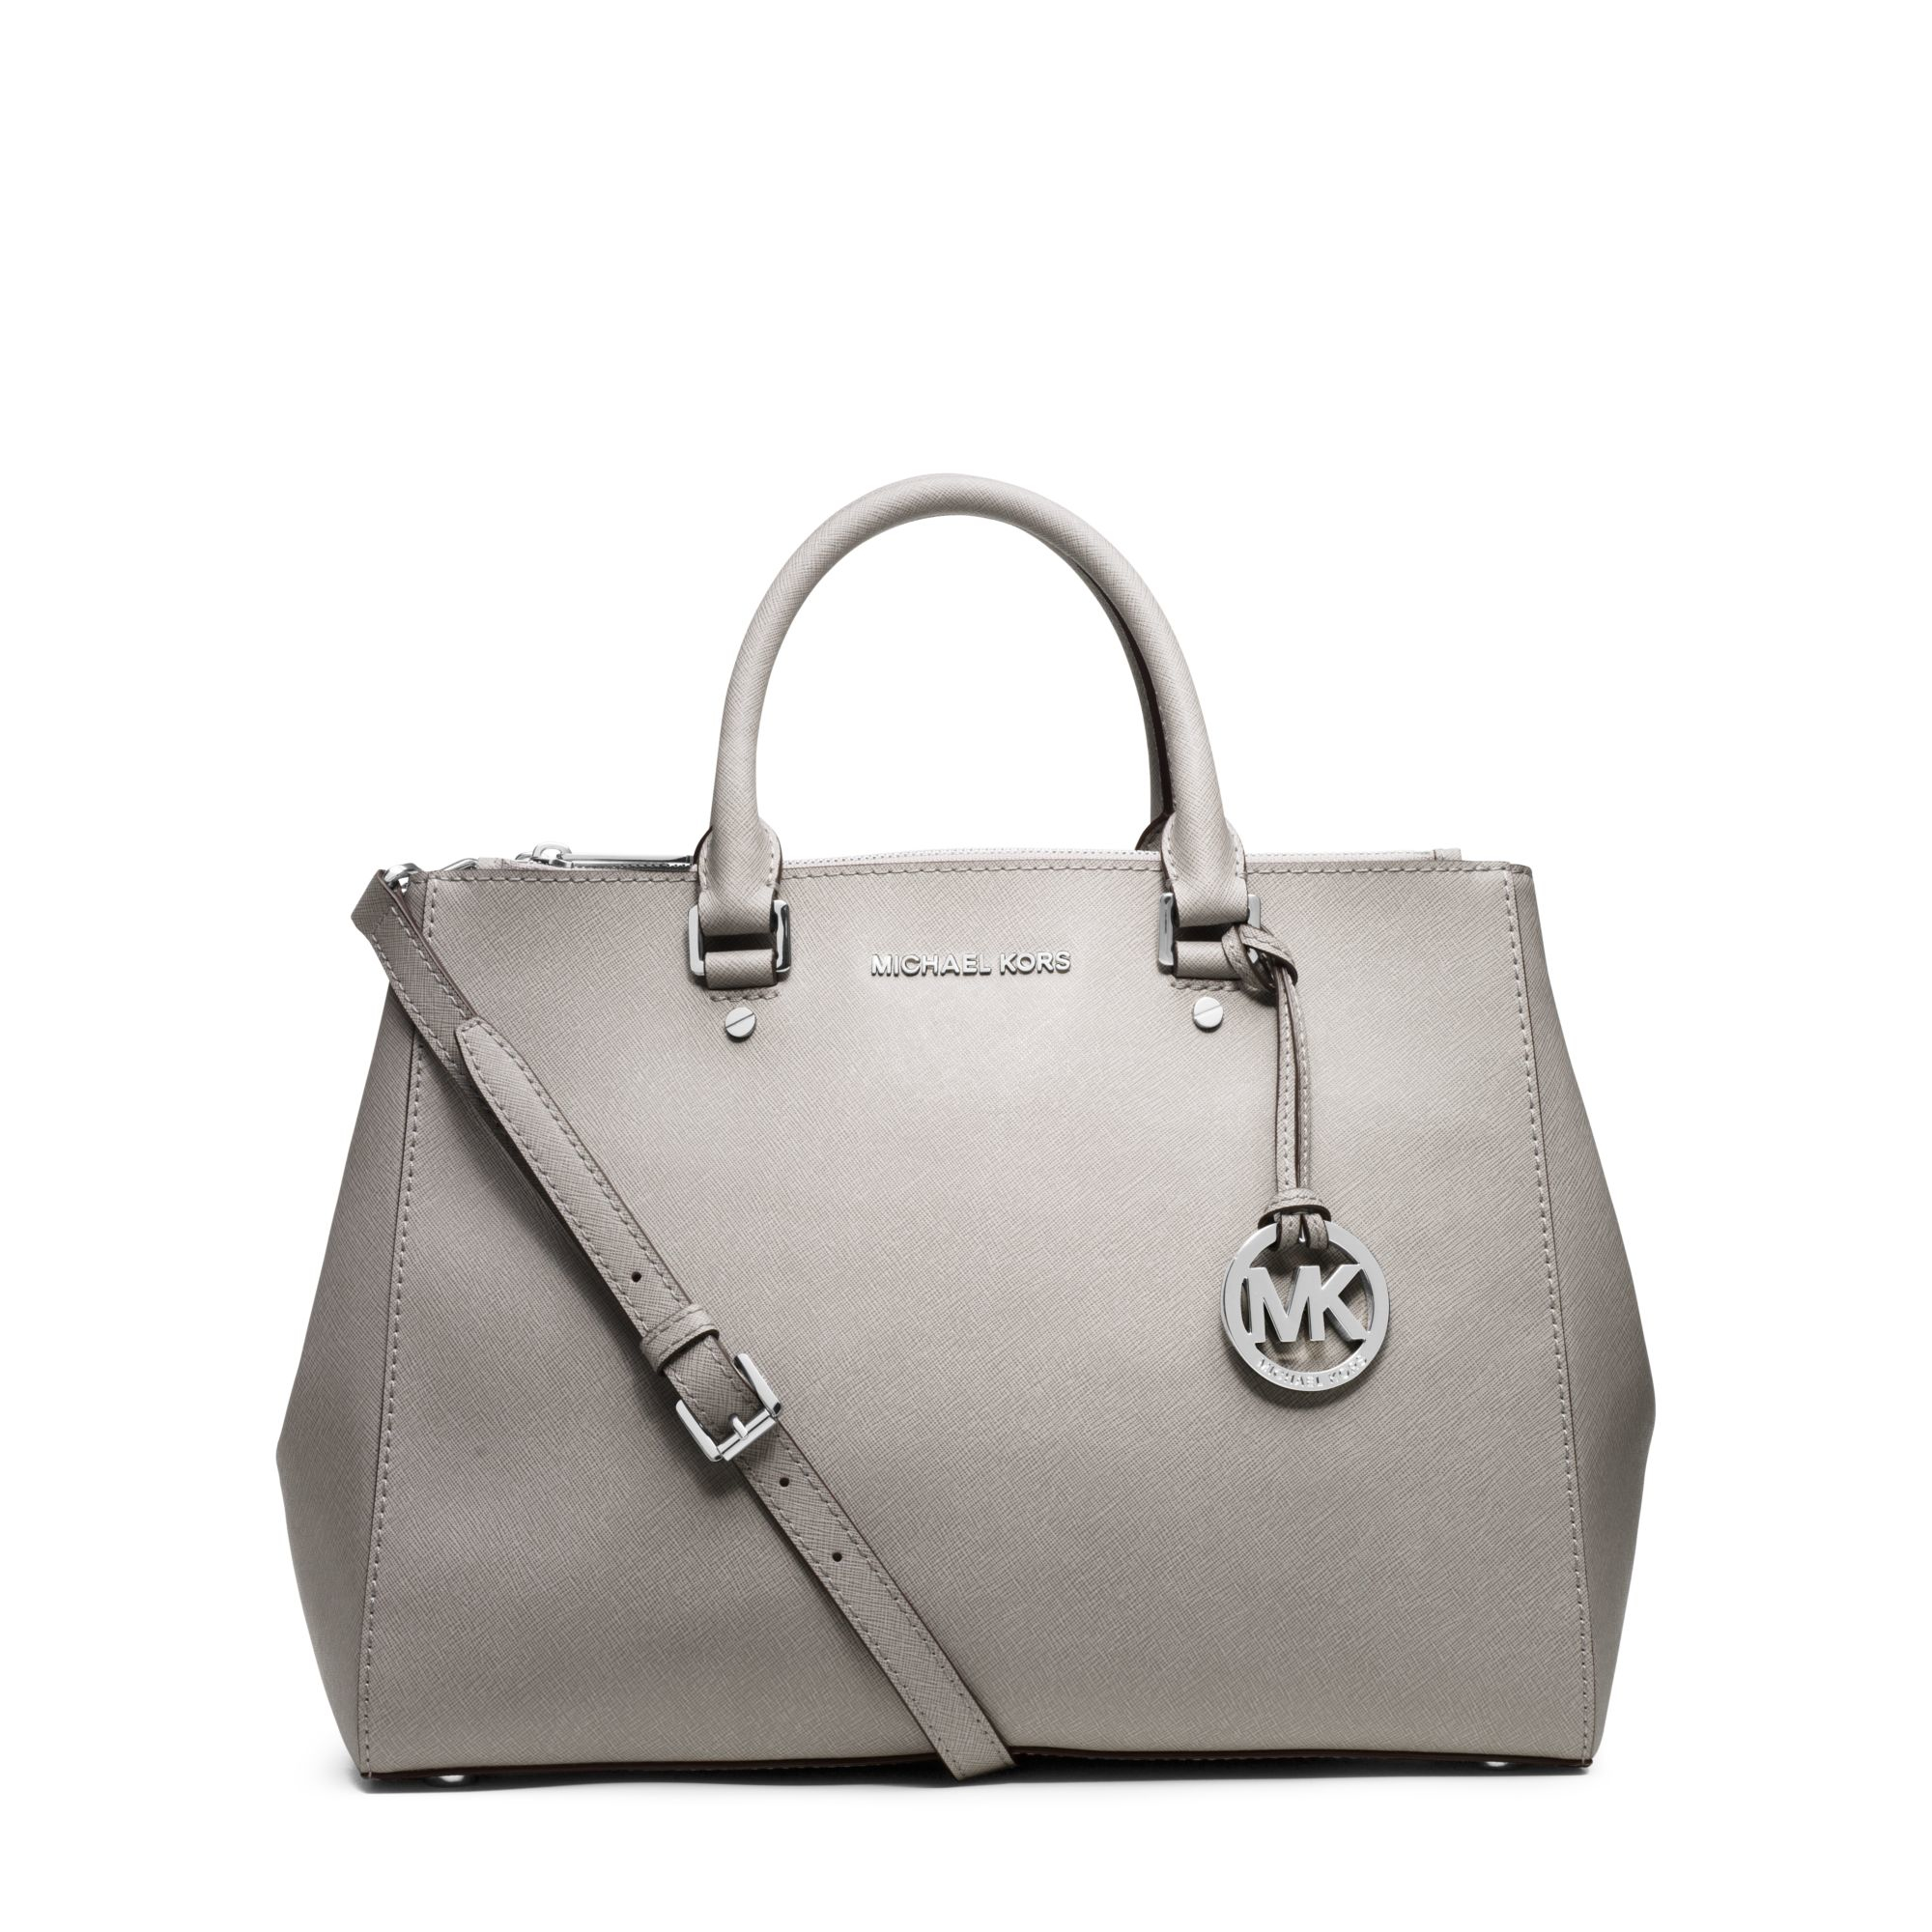 e5a9fbfeca6ce1 ... get lyst michael kors sutton saffiano leather satchel in white af323  07fee